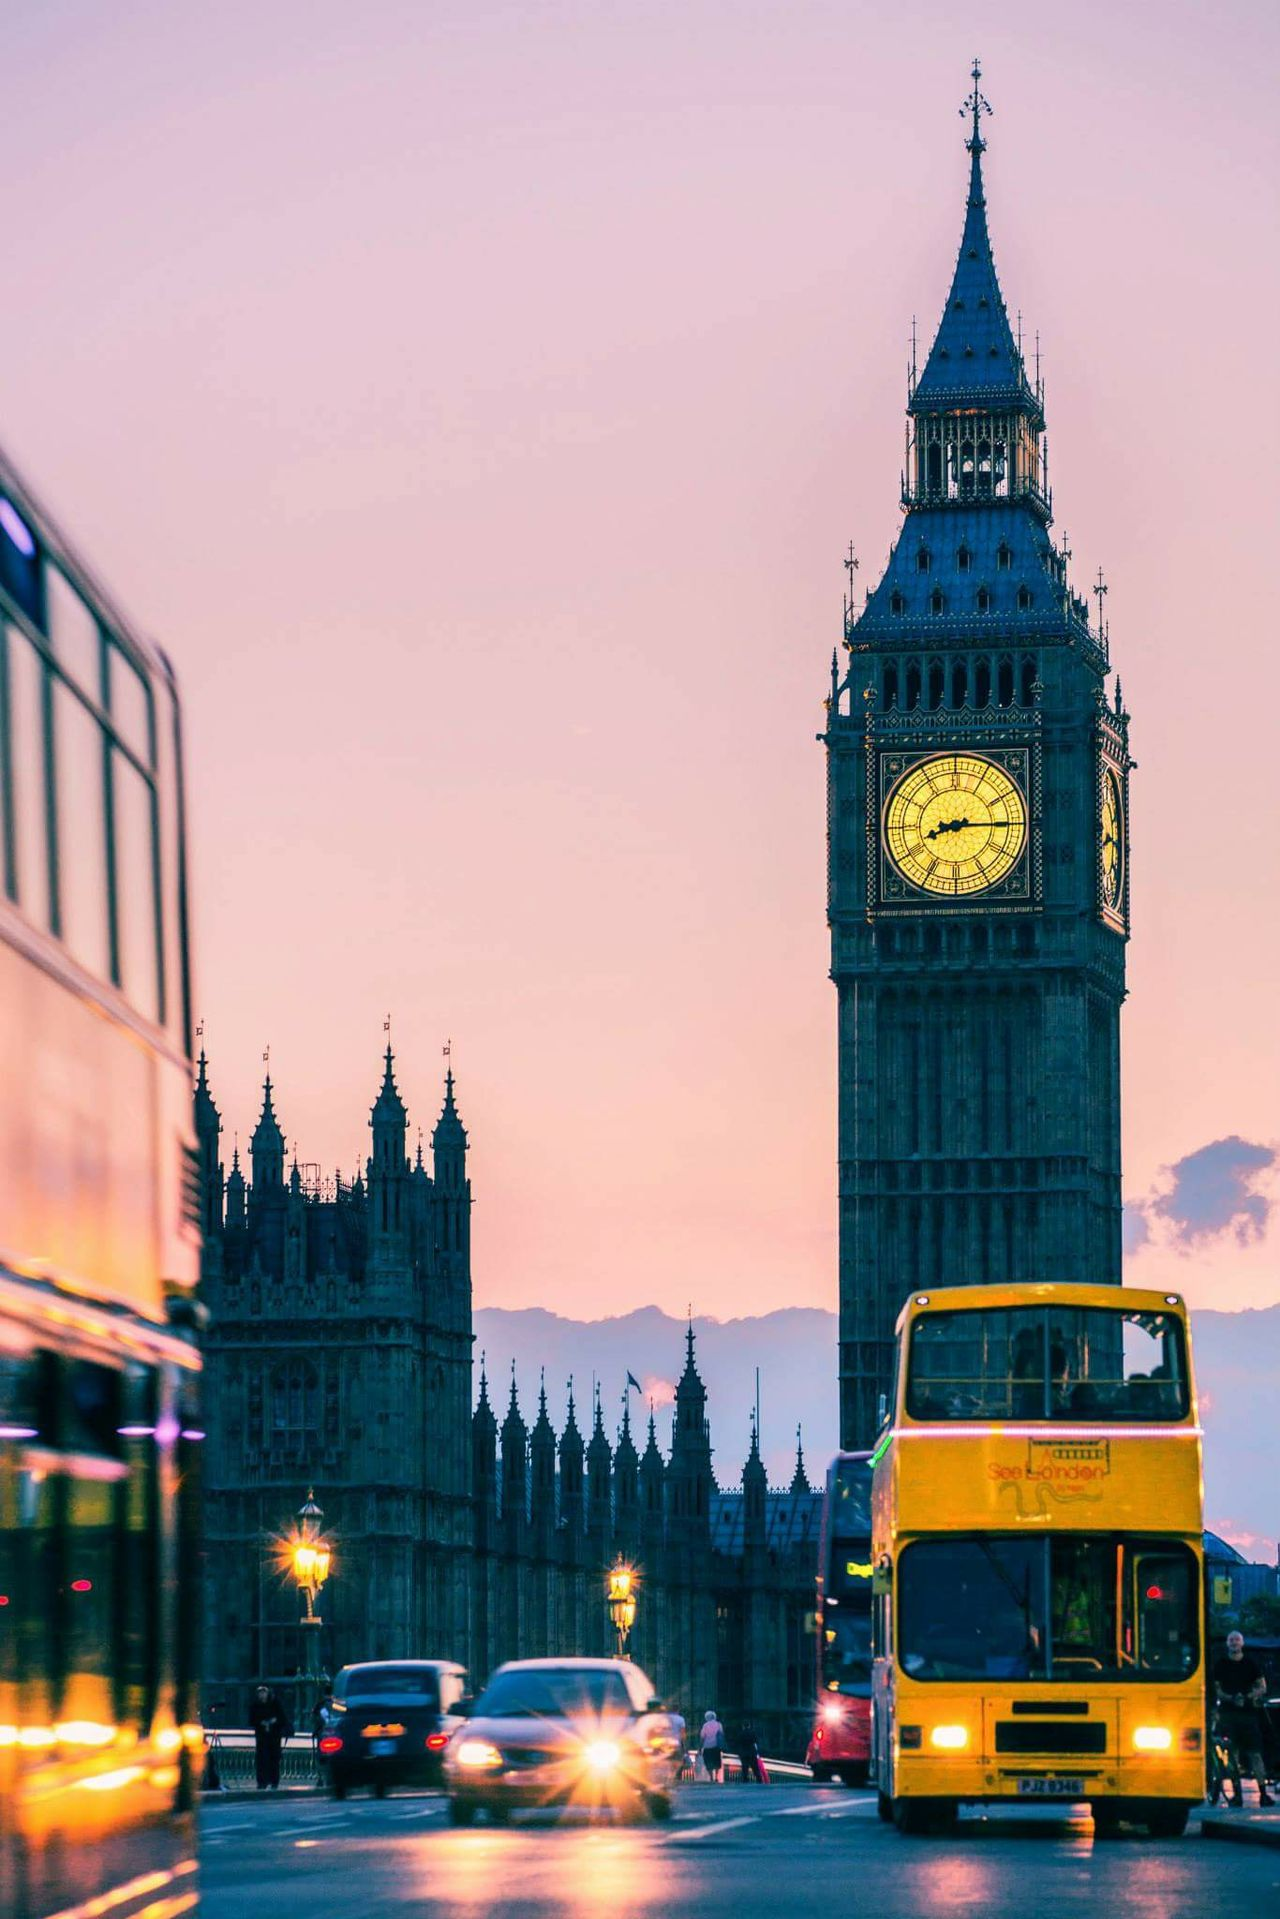 Big Ben Bigben London LONDON❤ London_only Westminster Canon 5d Mark Lll Canon 70-200 F2.8 L IS-II Sunset Tenerife